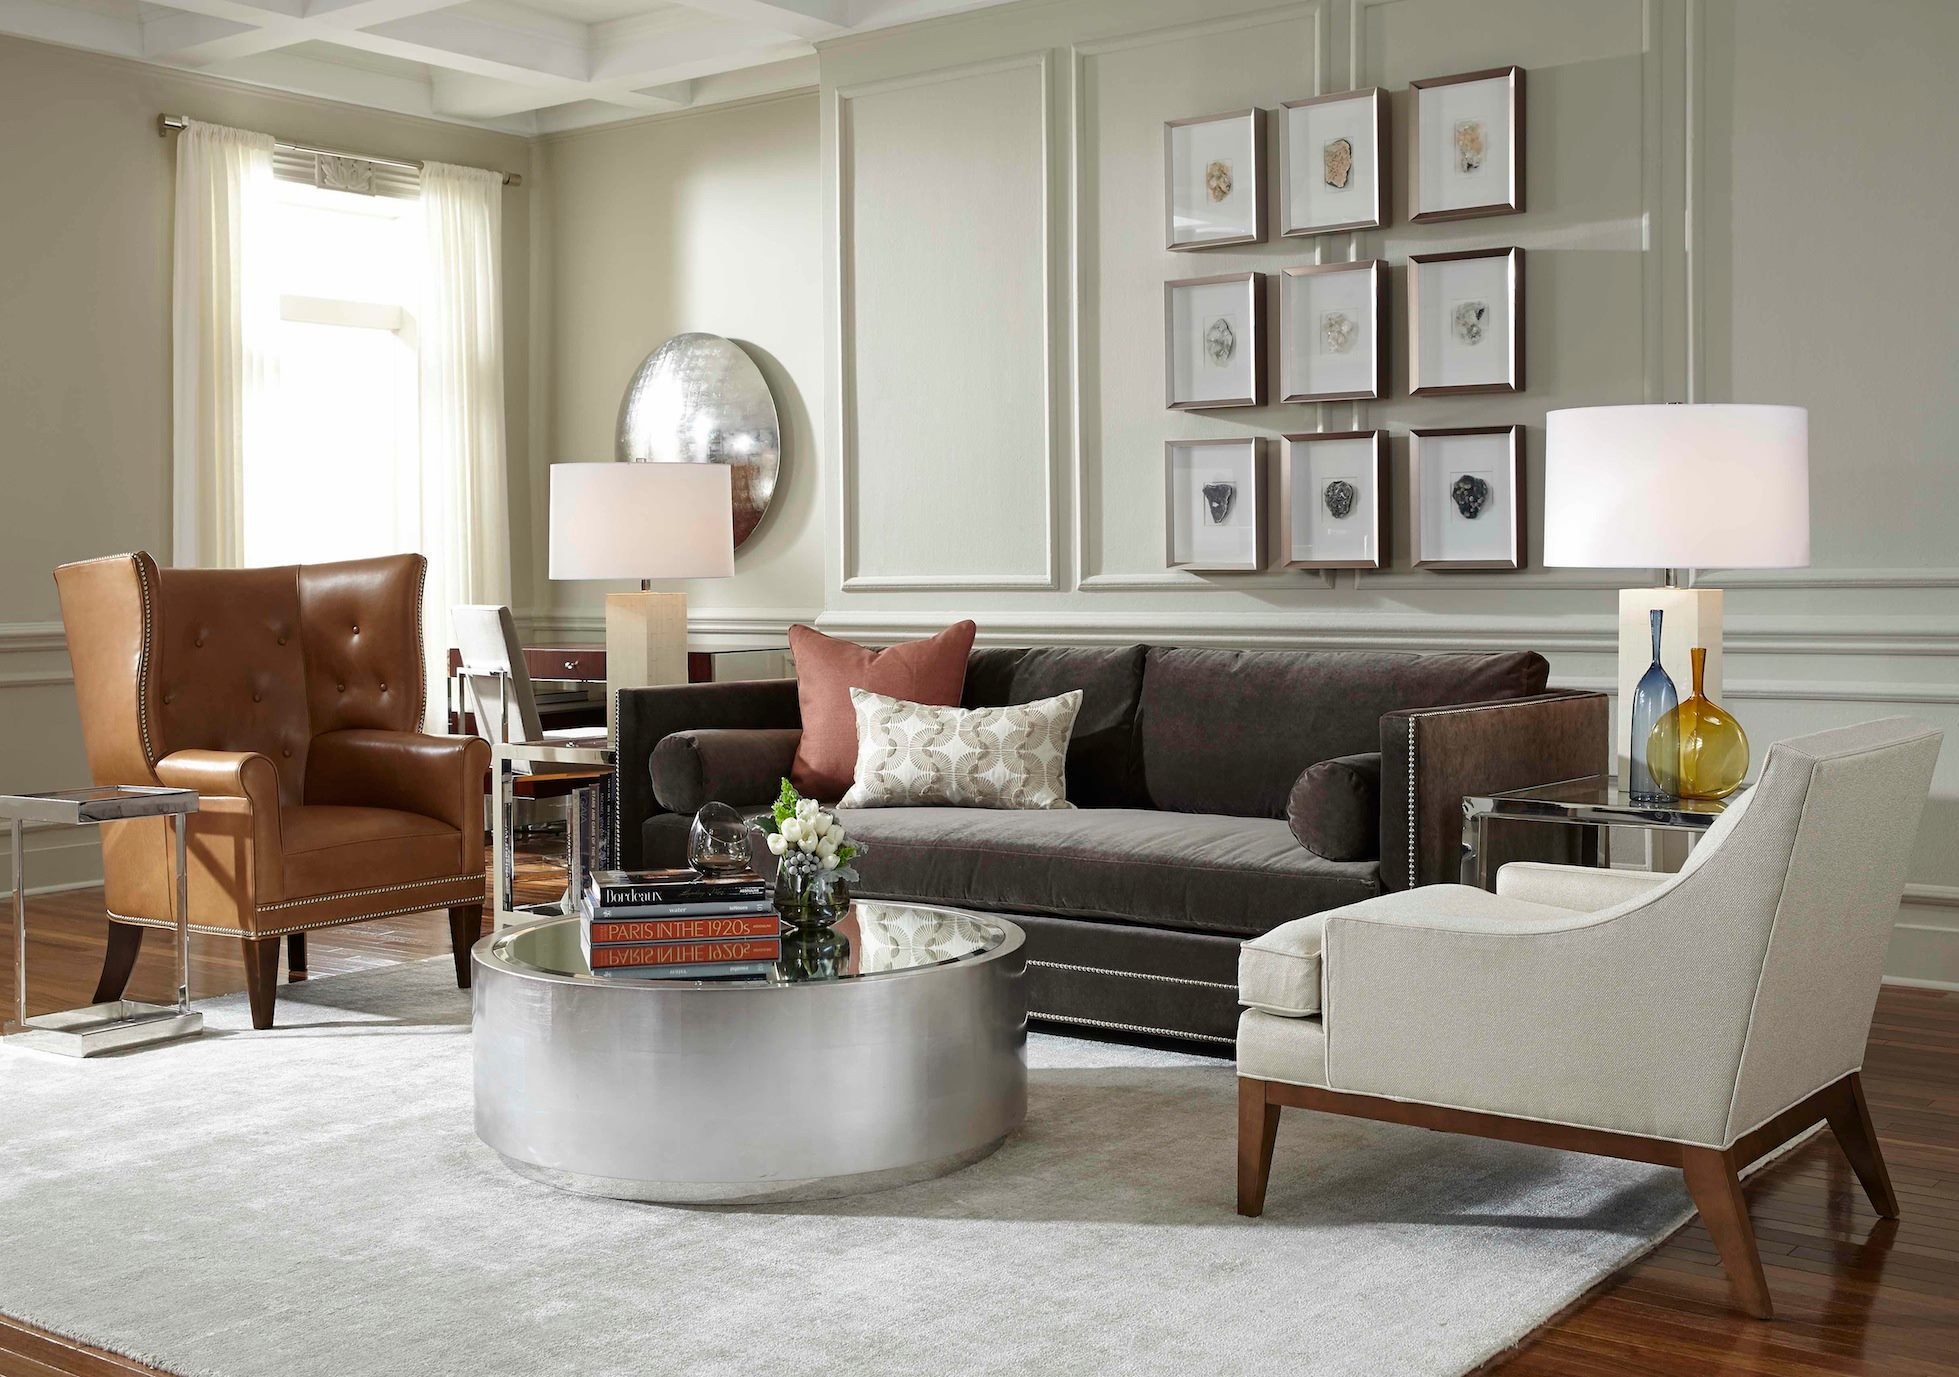 38 of miami 39 s best home goods and furniture stores 2015 for Best interior furniture